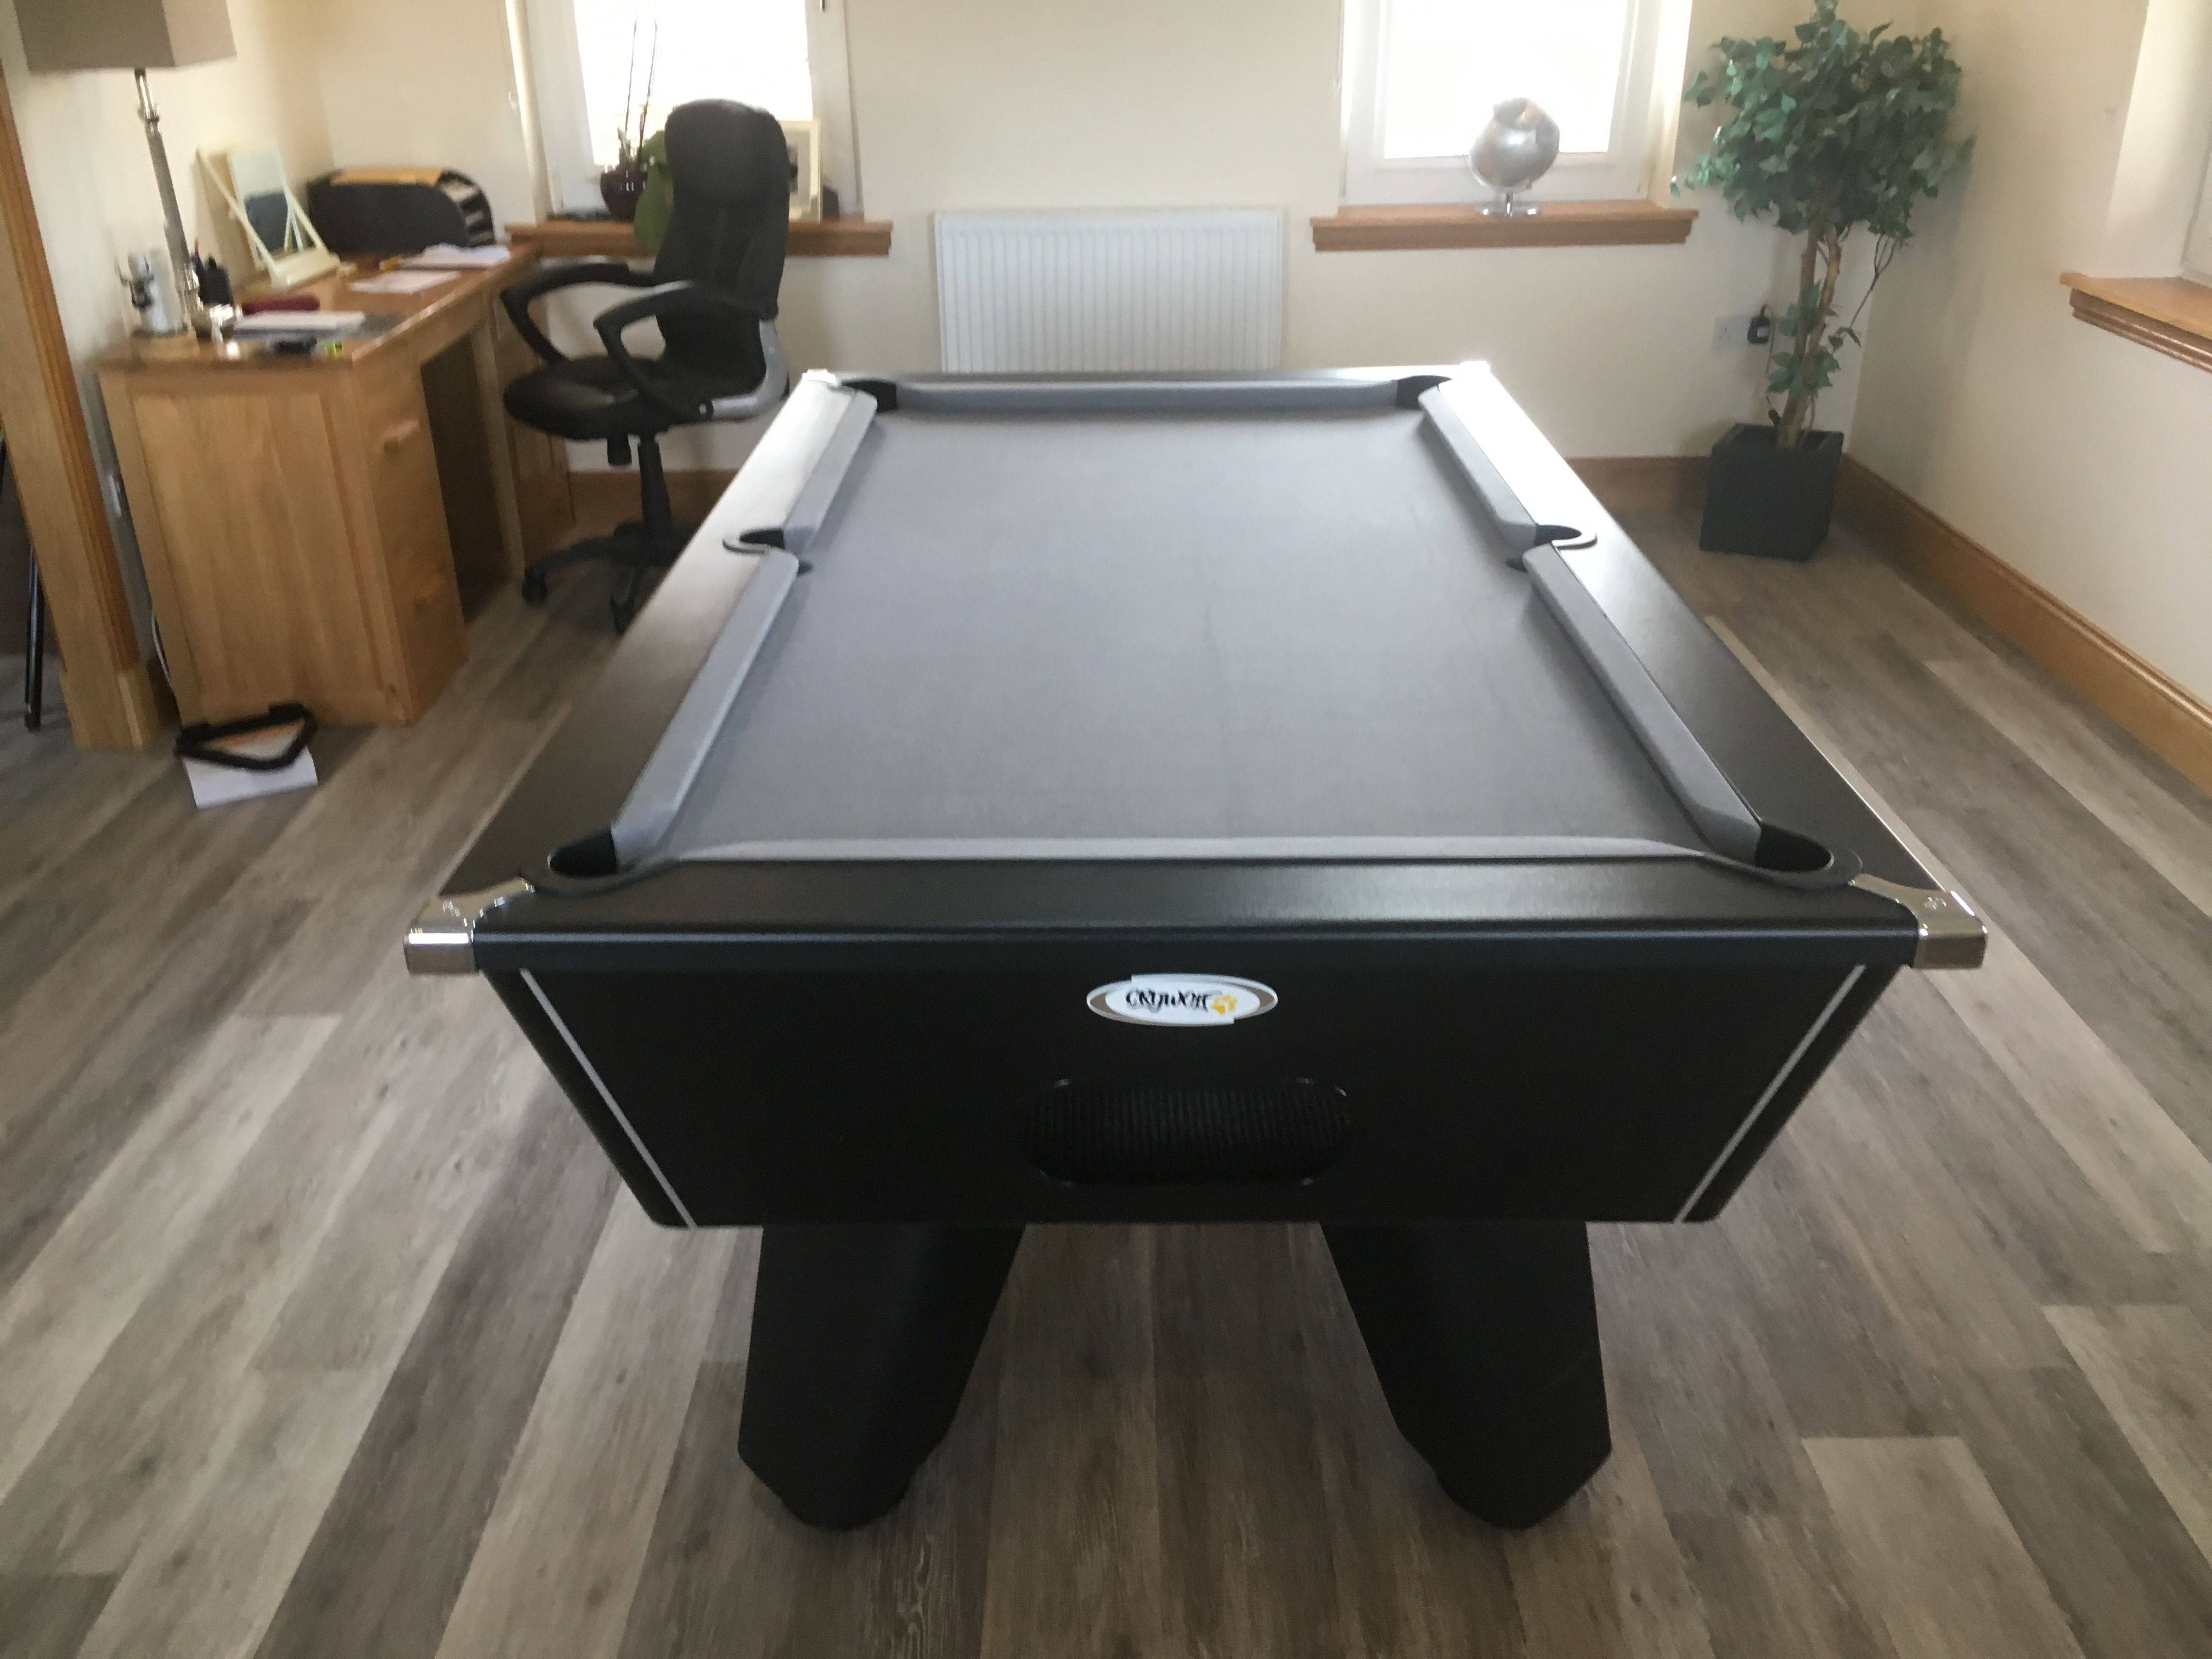 Domestic pool table – Silver cloth. Elgin